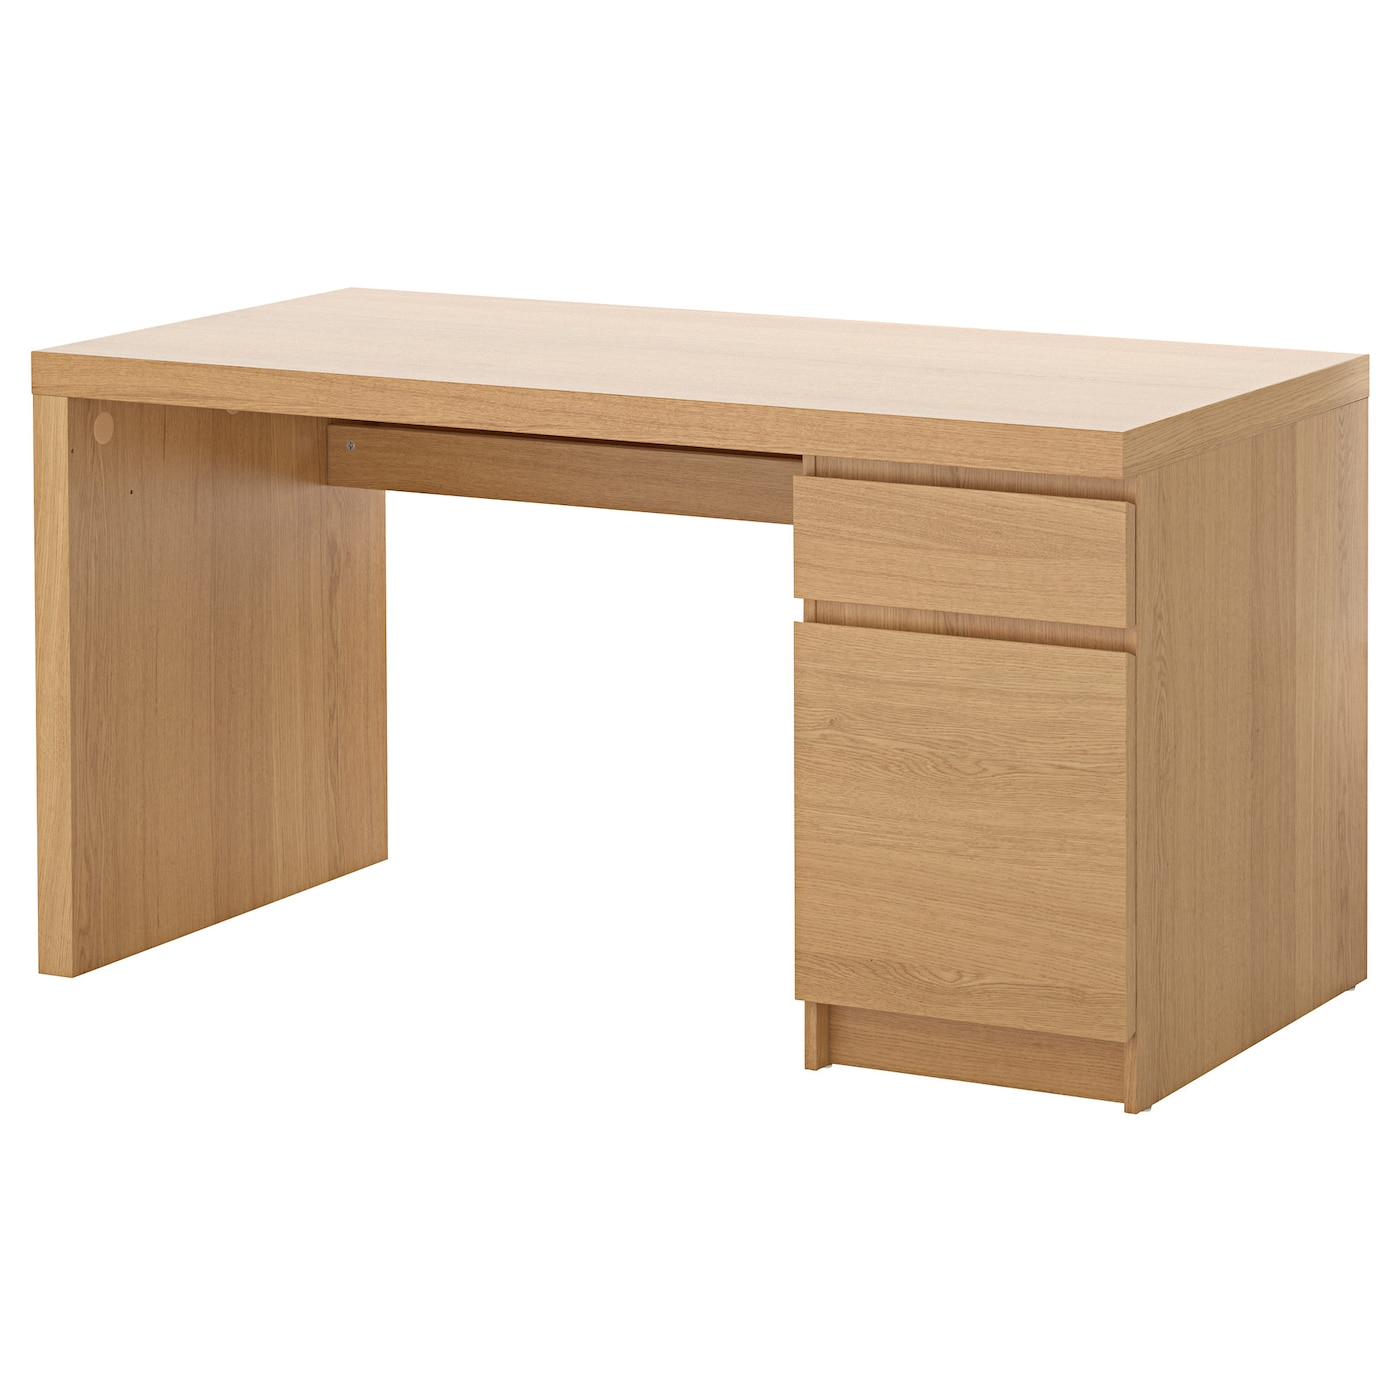 malm desk oak veneer 140x65 cm ikea. Black Bedroom Furniture Sets. Home Design Ideas